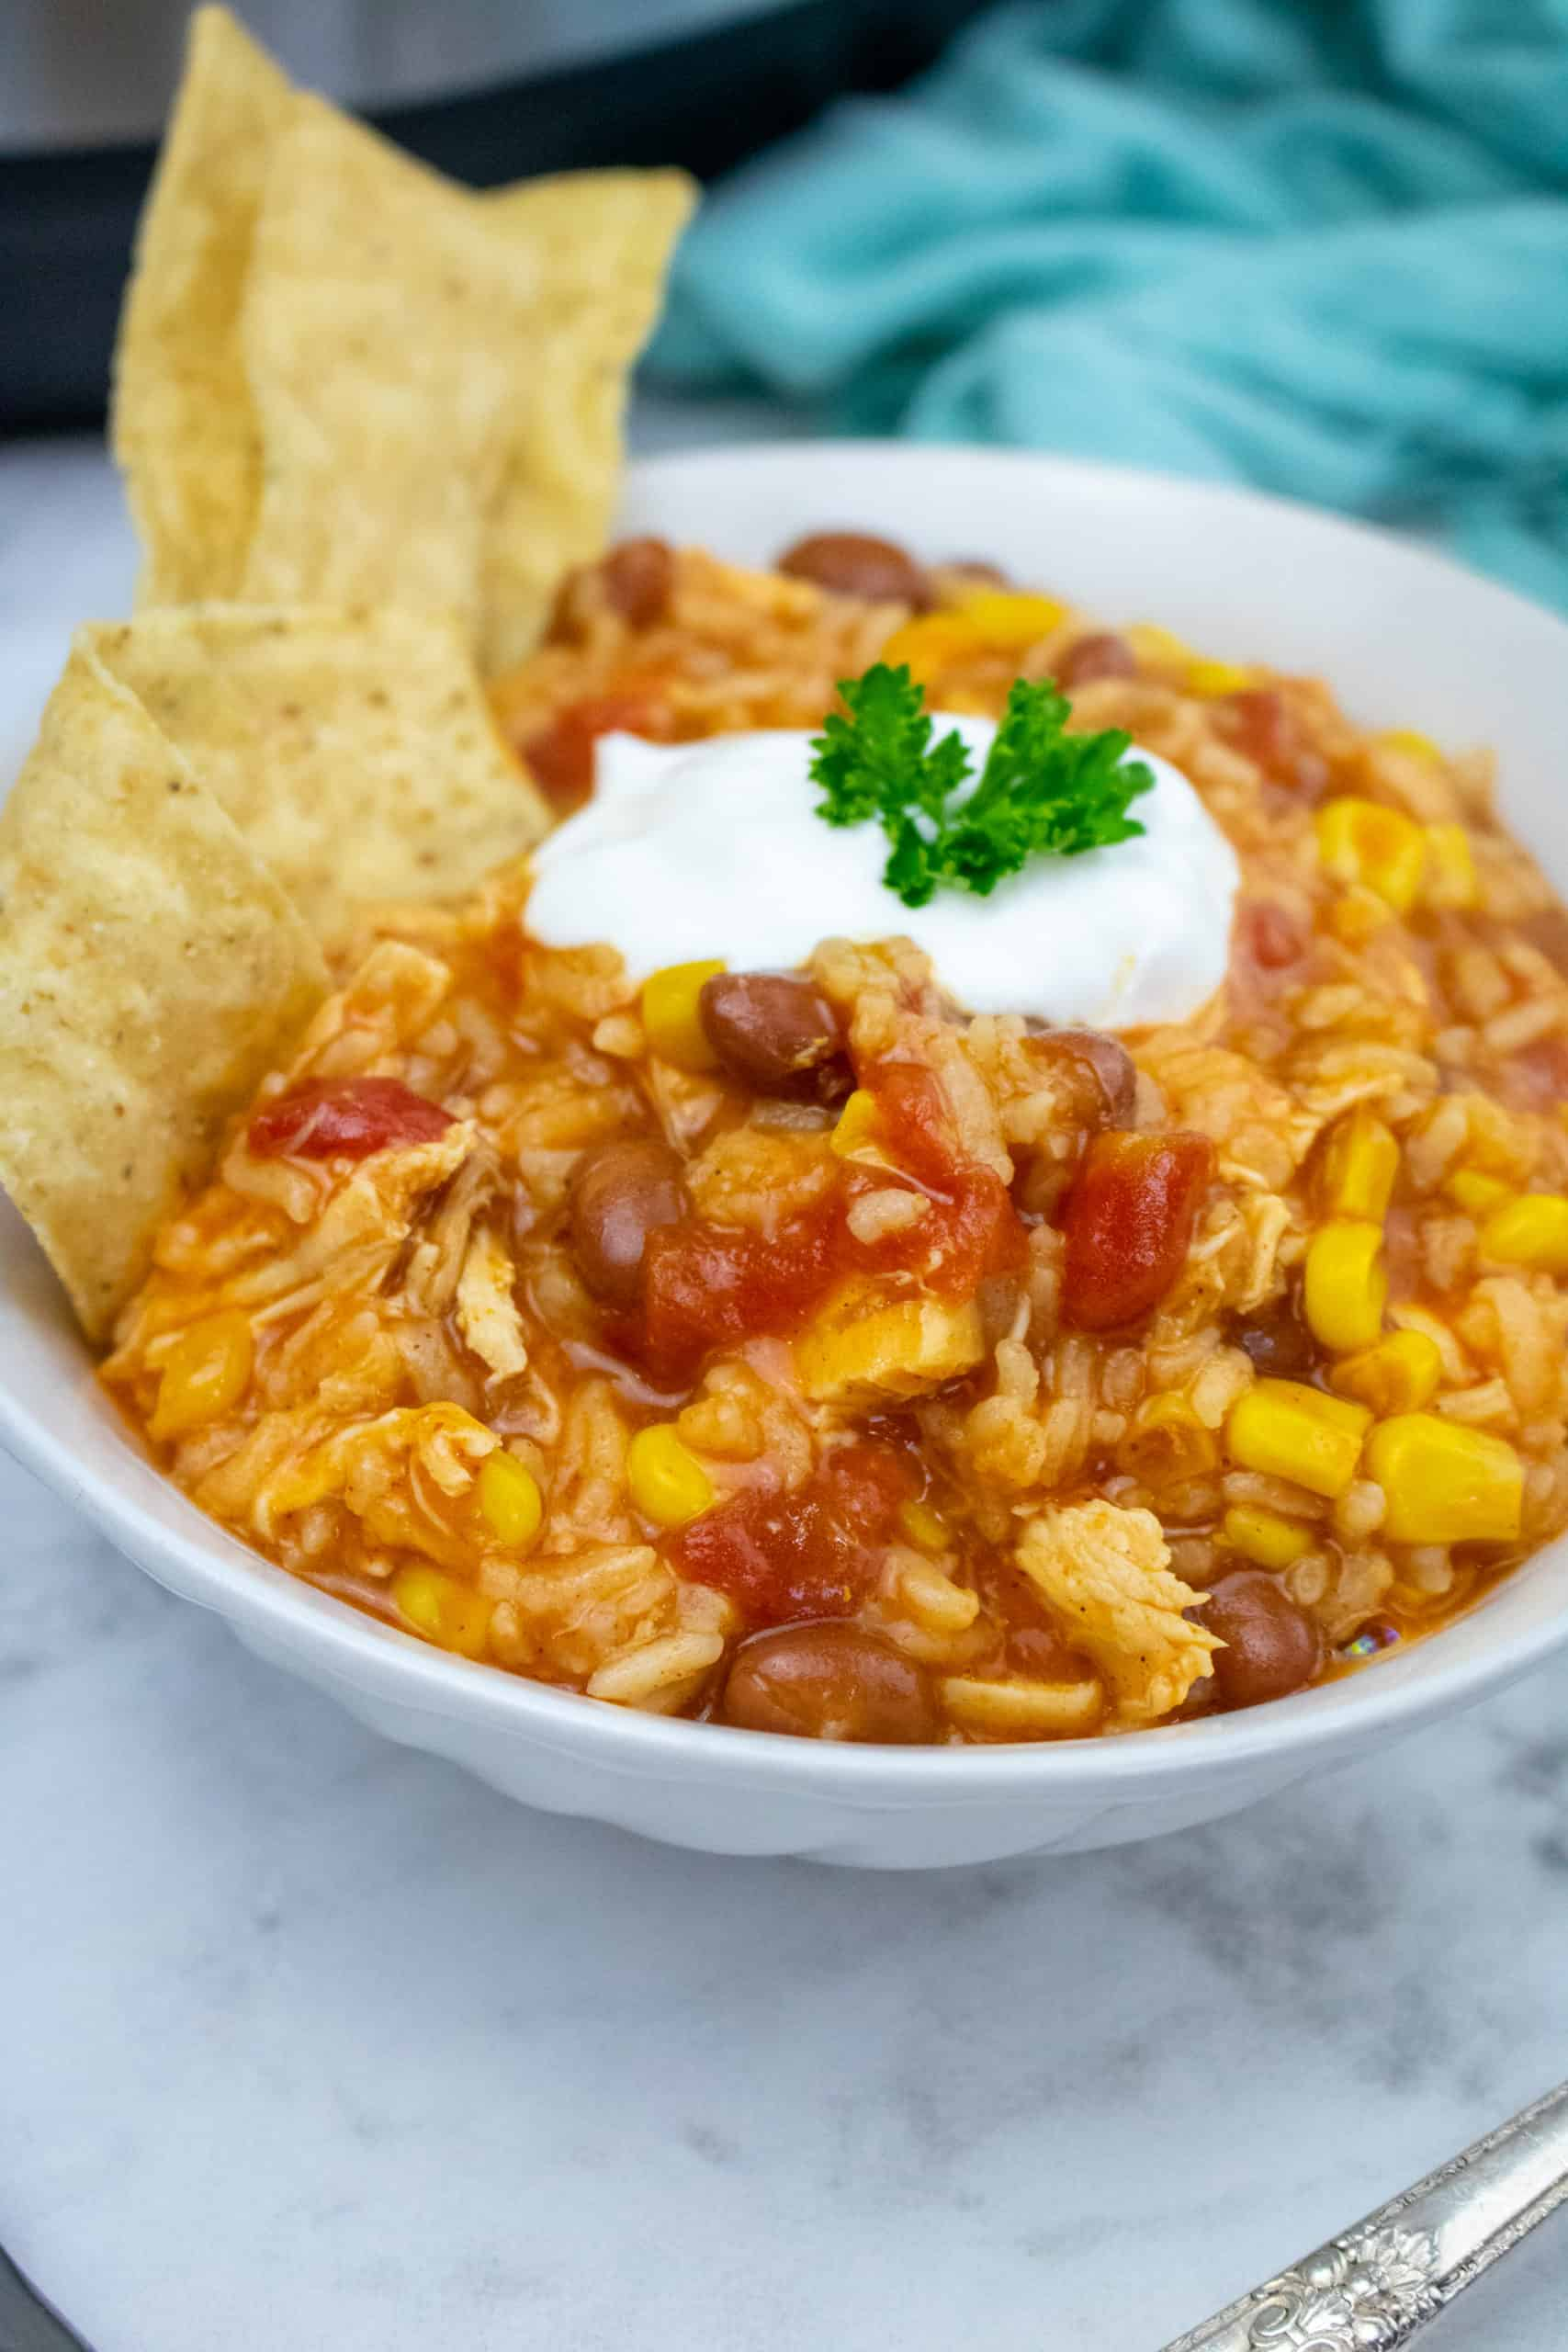 Instant Pot Chicken Enchilada Casserole with rice is the ultimate Instant Pot chicken recipe. You have tender rice, corn, black beans, shreds of chicken in every single bite.